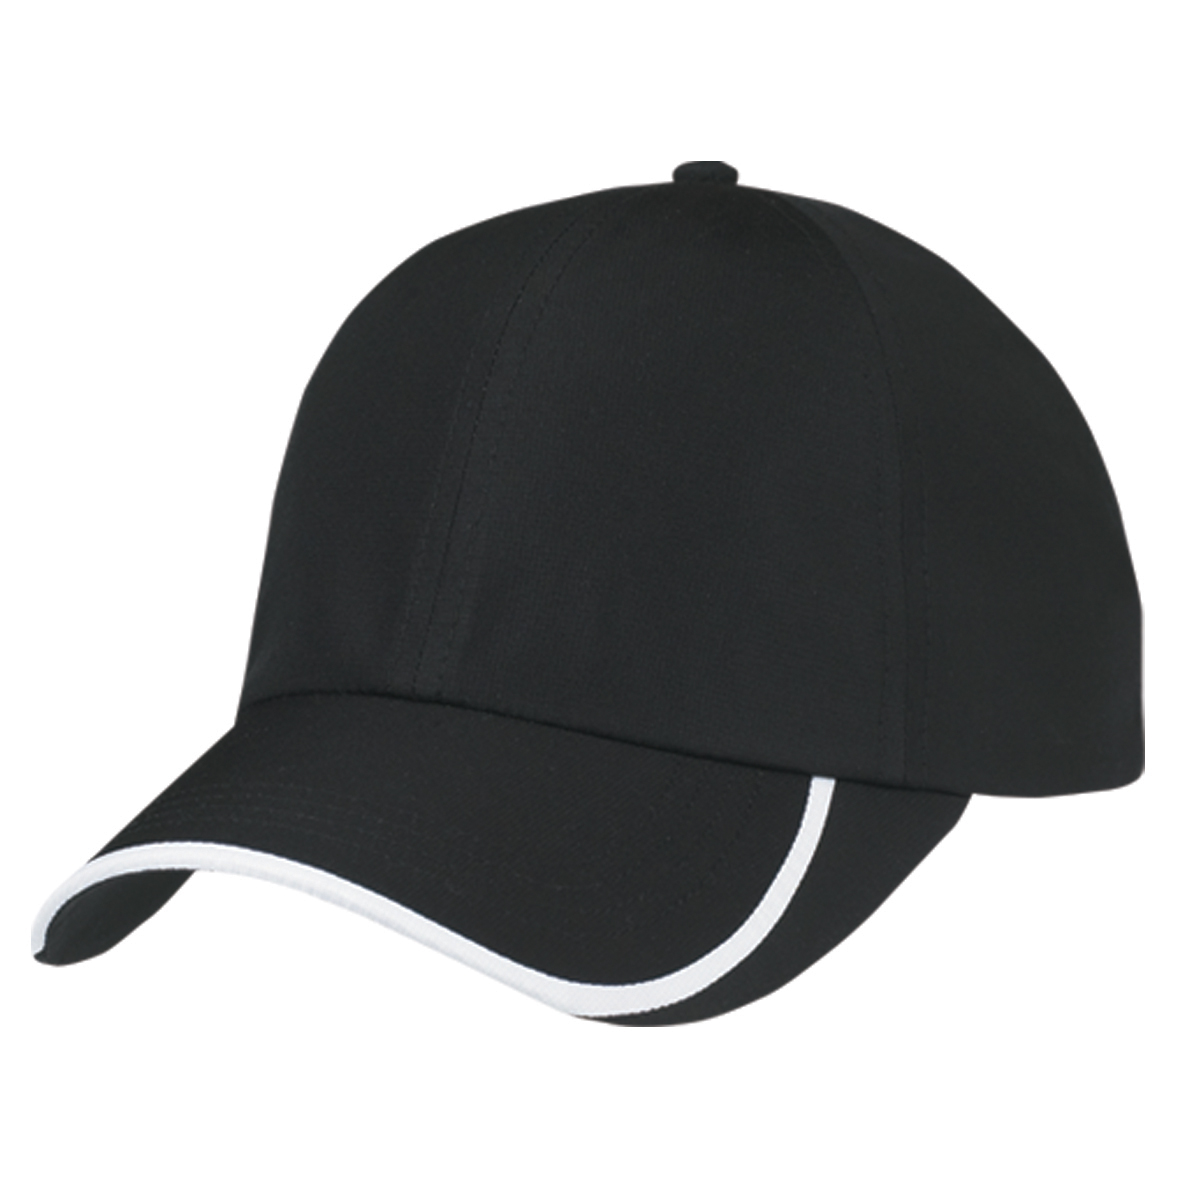 1086 Ih Blac And White : Hit dry curve ball cap